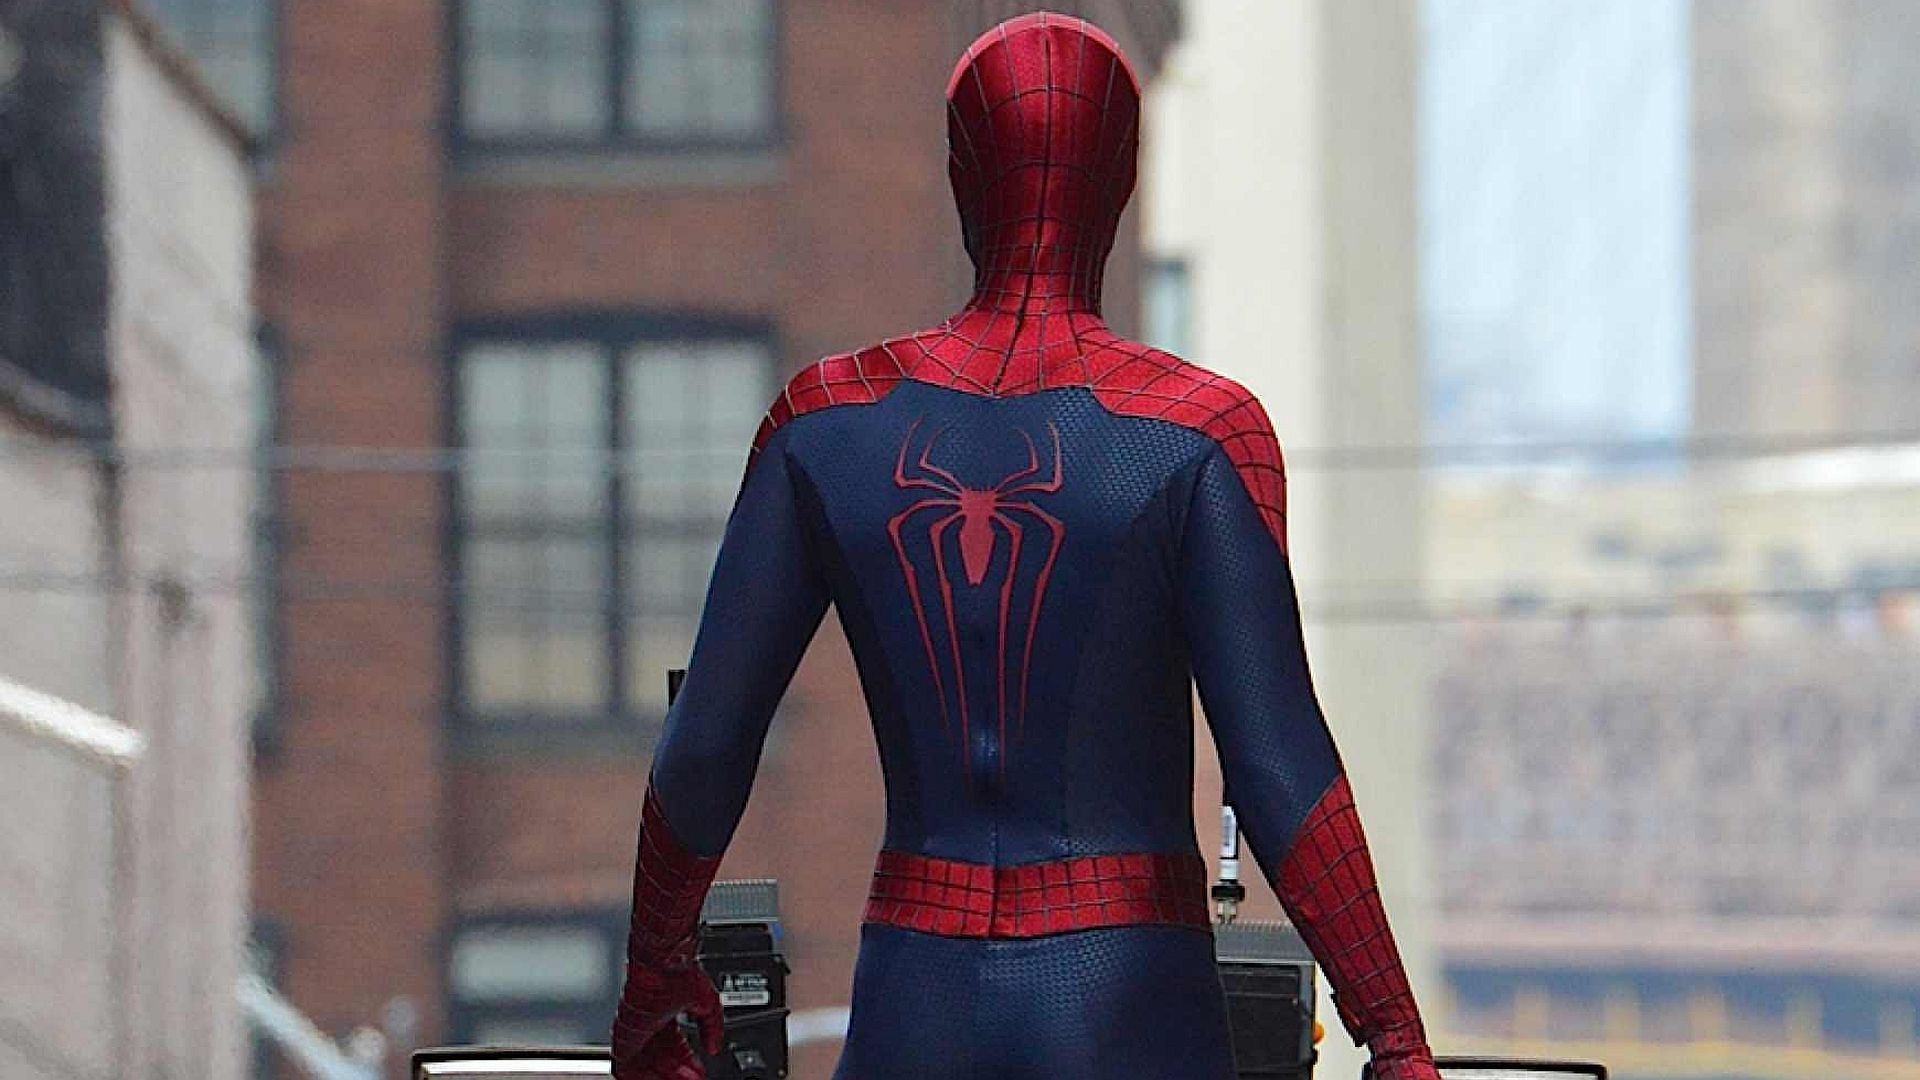 Free Top Spider Man x Wide Desktop Wallpapers and